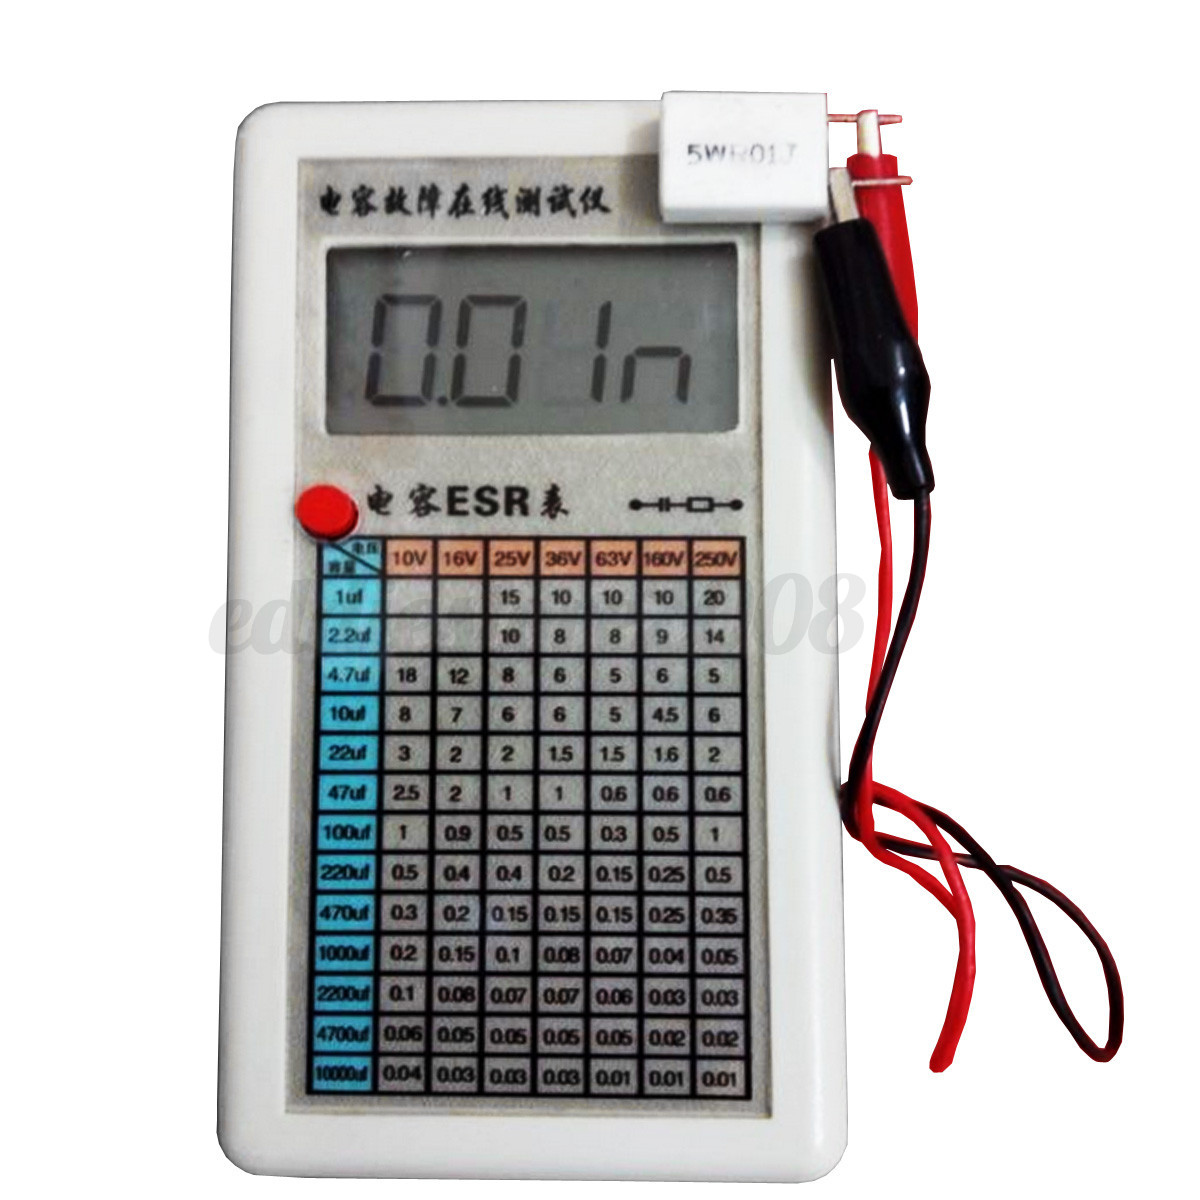 Esr Meter For Batteries : Digital esr capacitor tester internal resistance meter